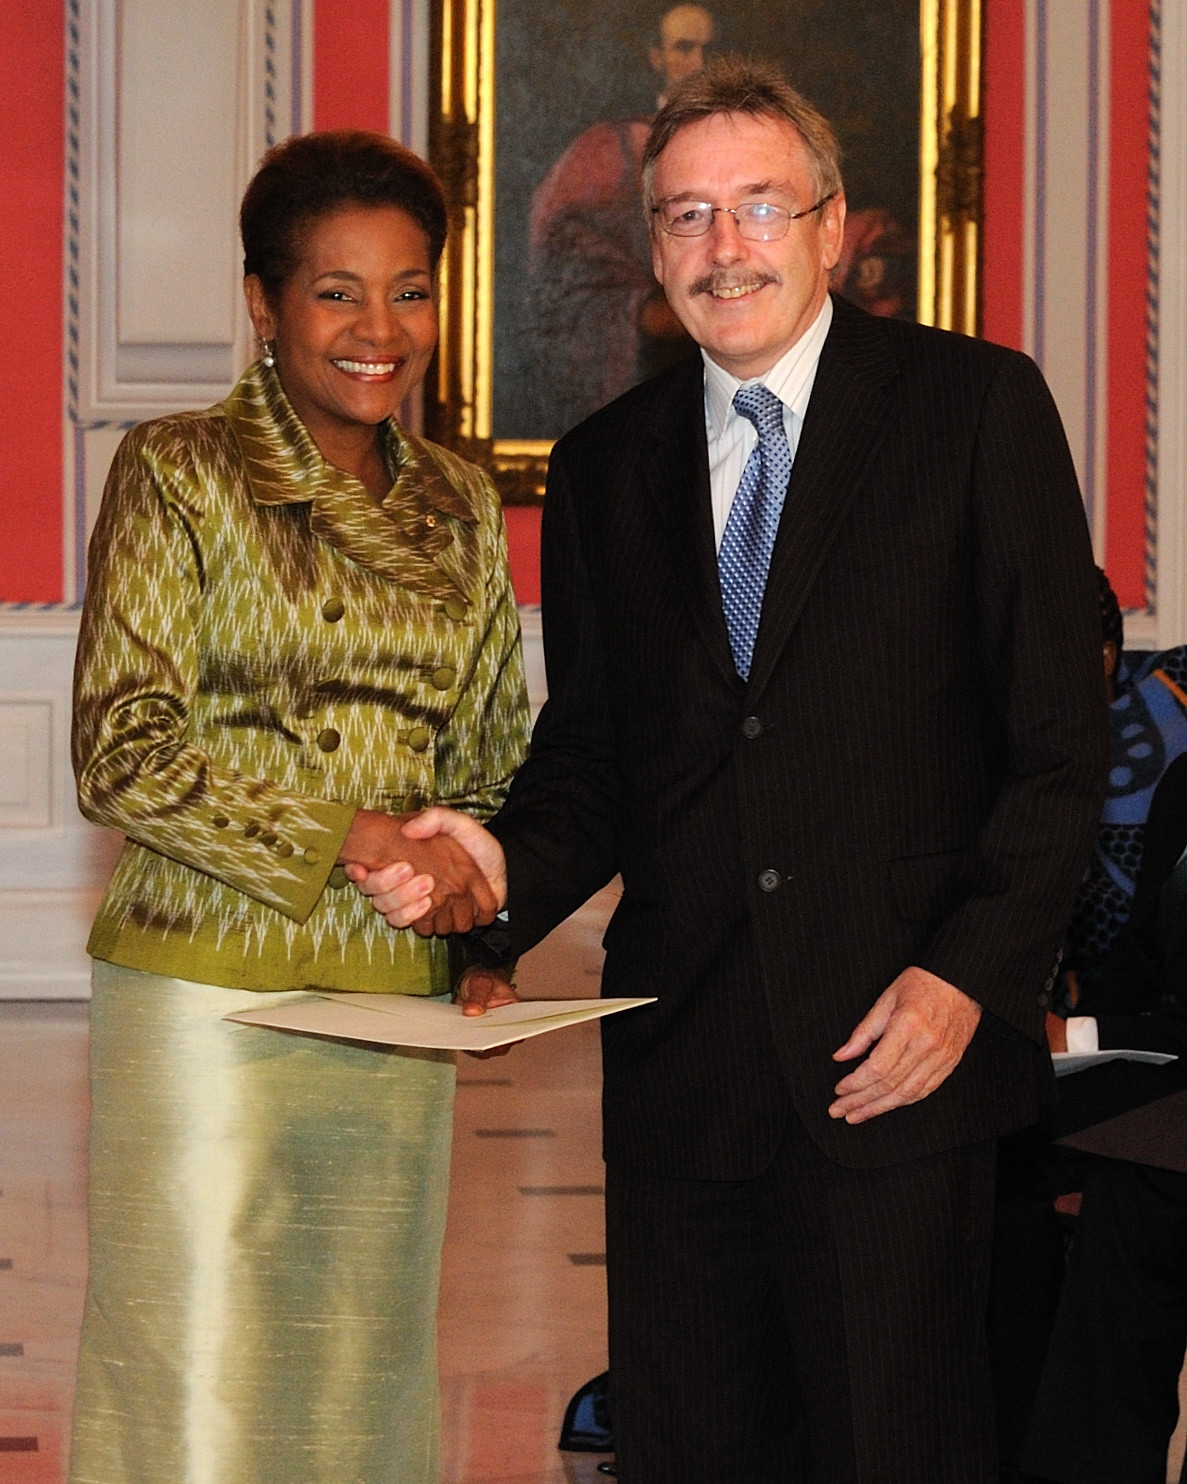 Her Excellency the Right Honourable Michaëlle Jean, Governor General of Canada, received the credentials of His Excellency John Raymond Bassett, Ambassador-designate of Ireland.